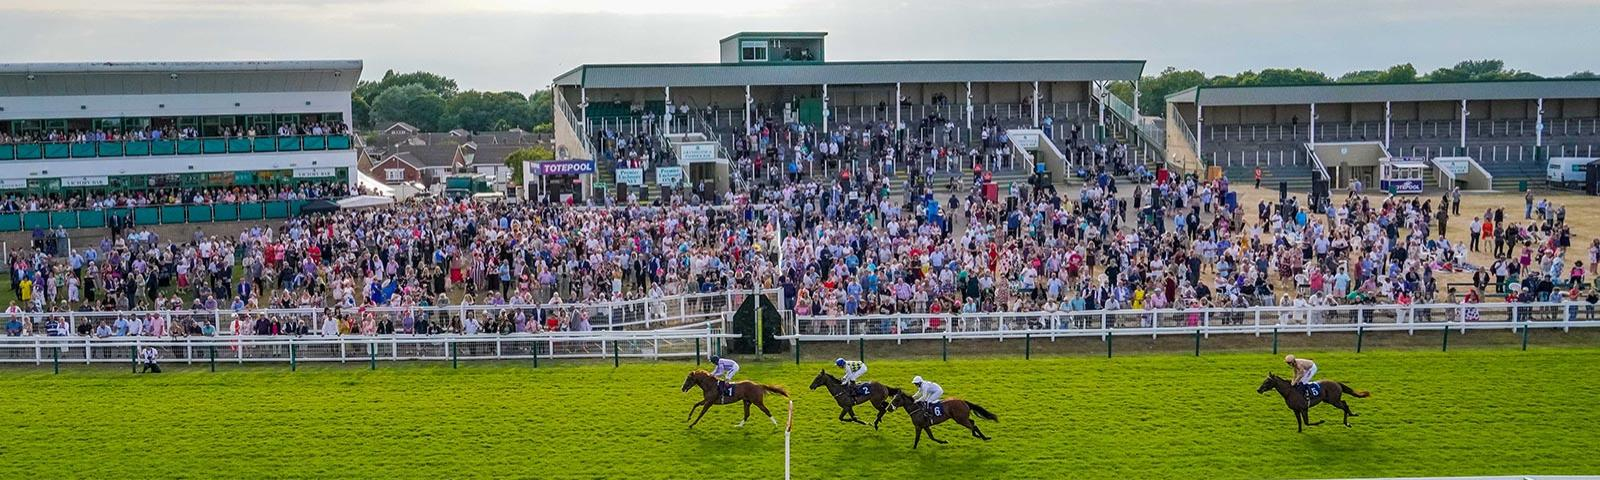 Group of jockeys racing past the grandstand at Great Yarmouth Racecourse.